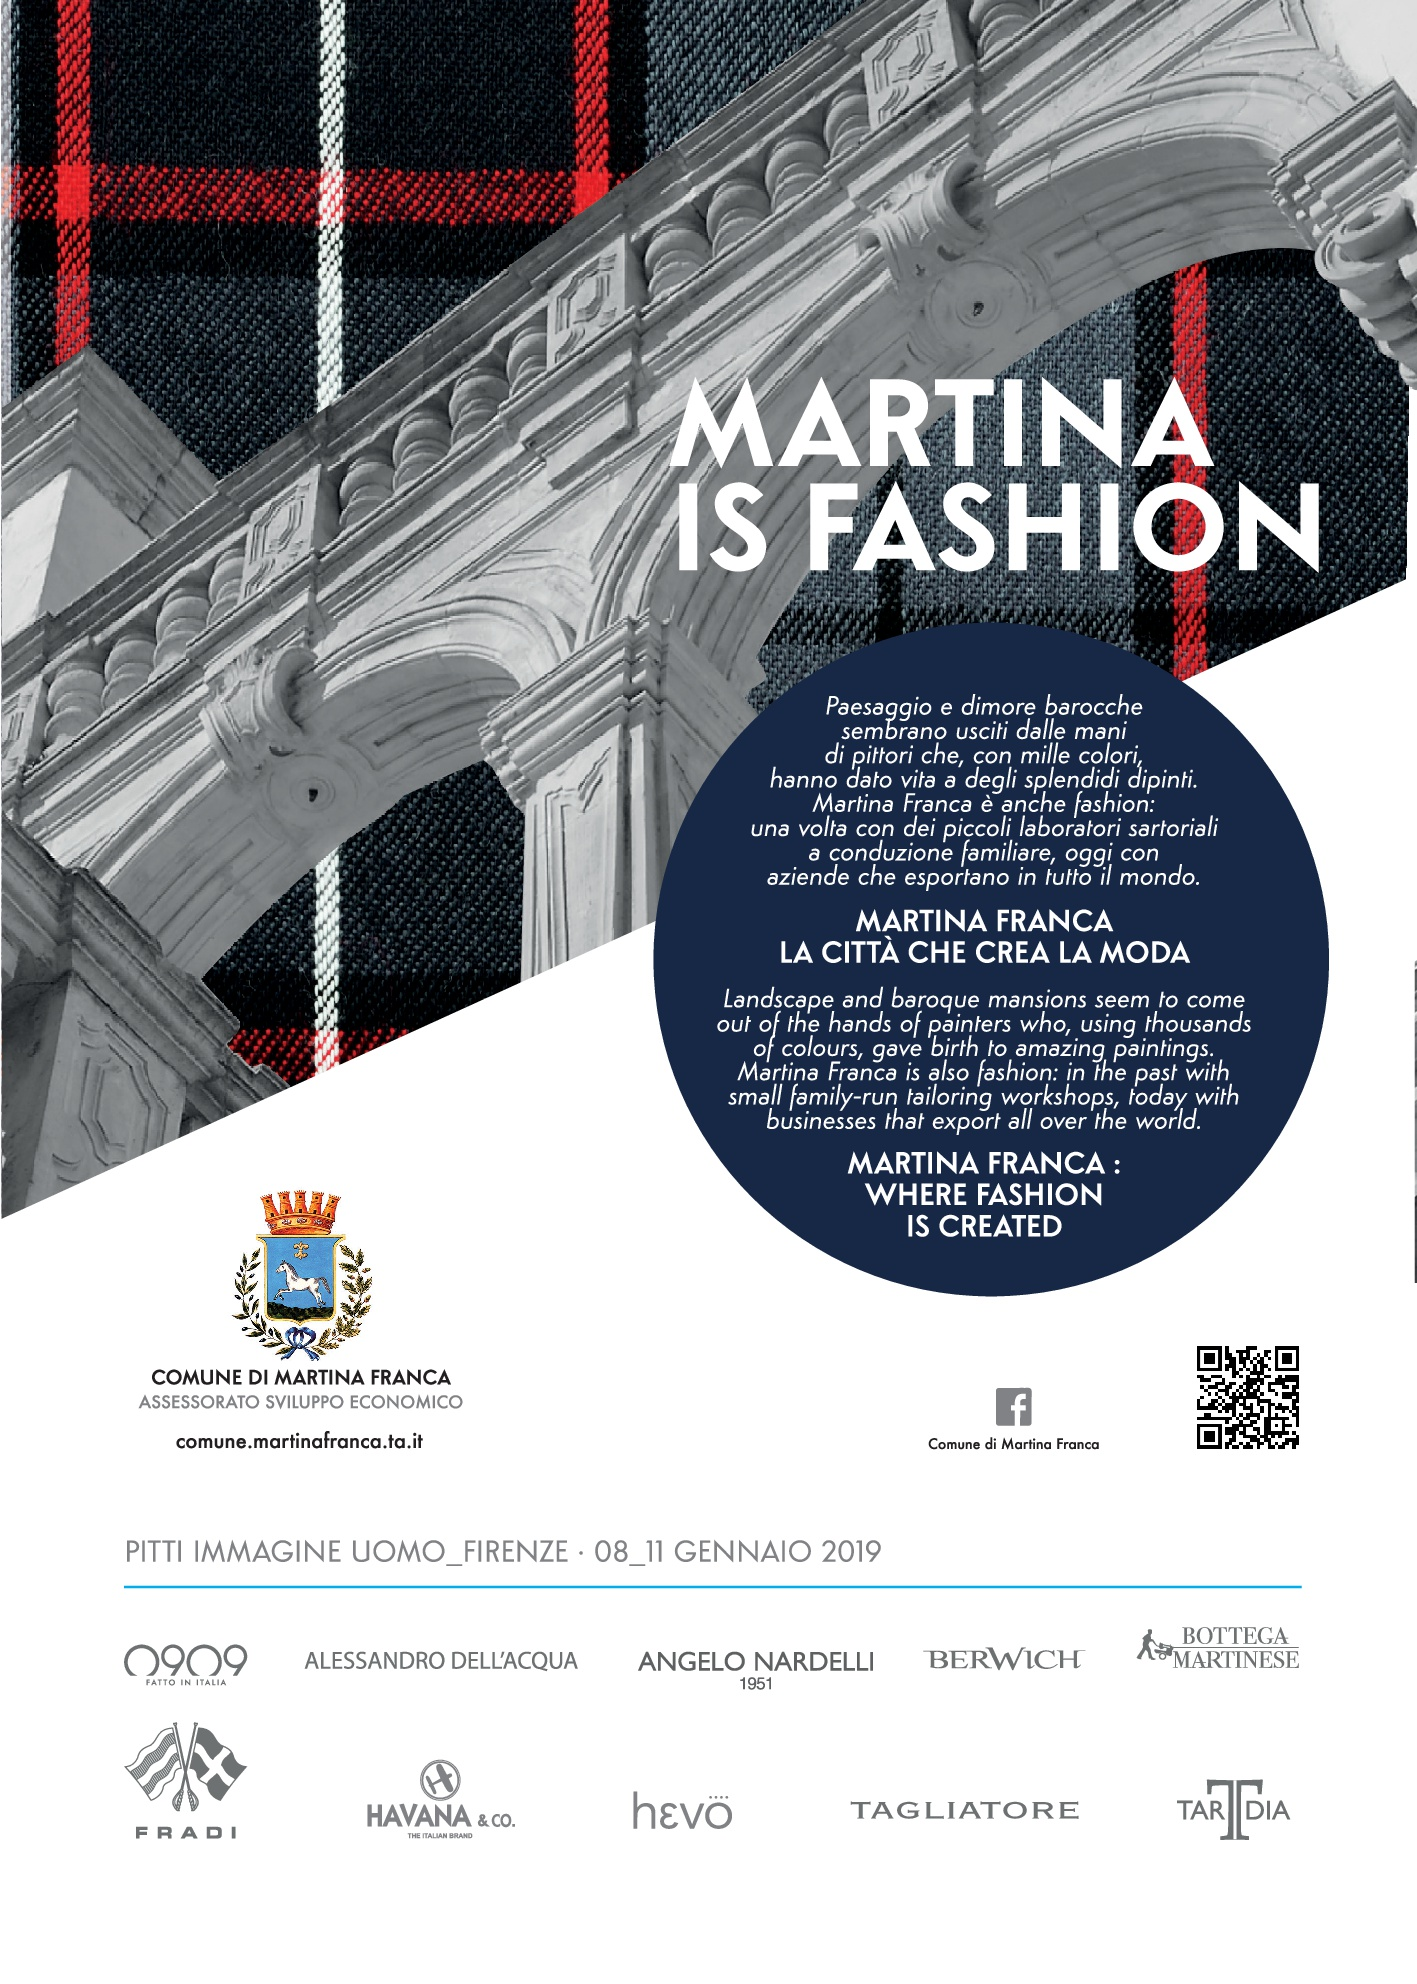 Martina is Fashion Pitti 2019